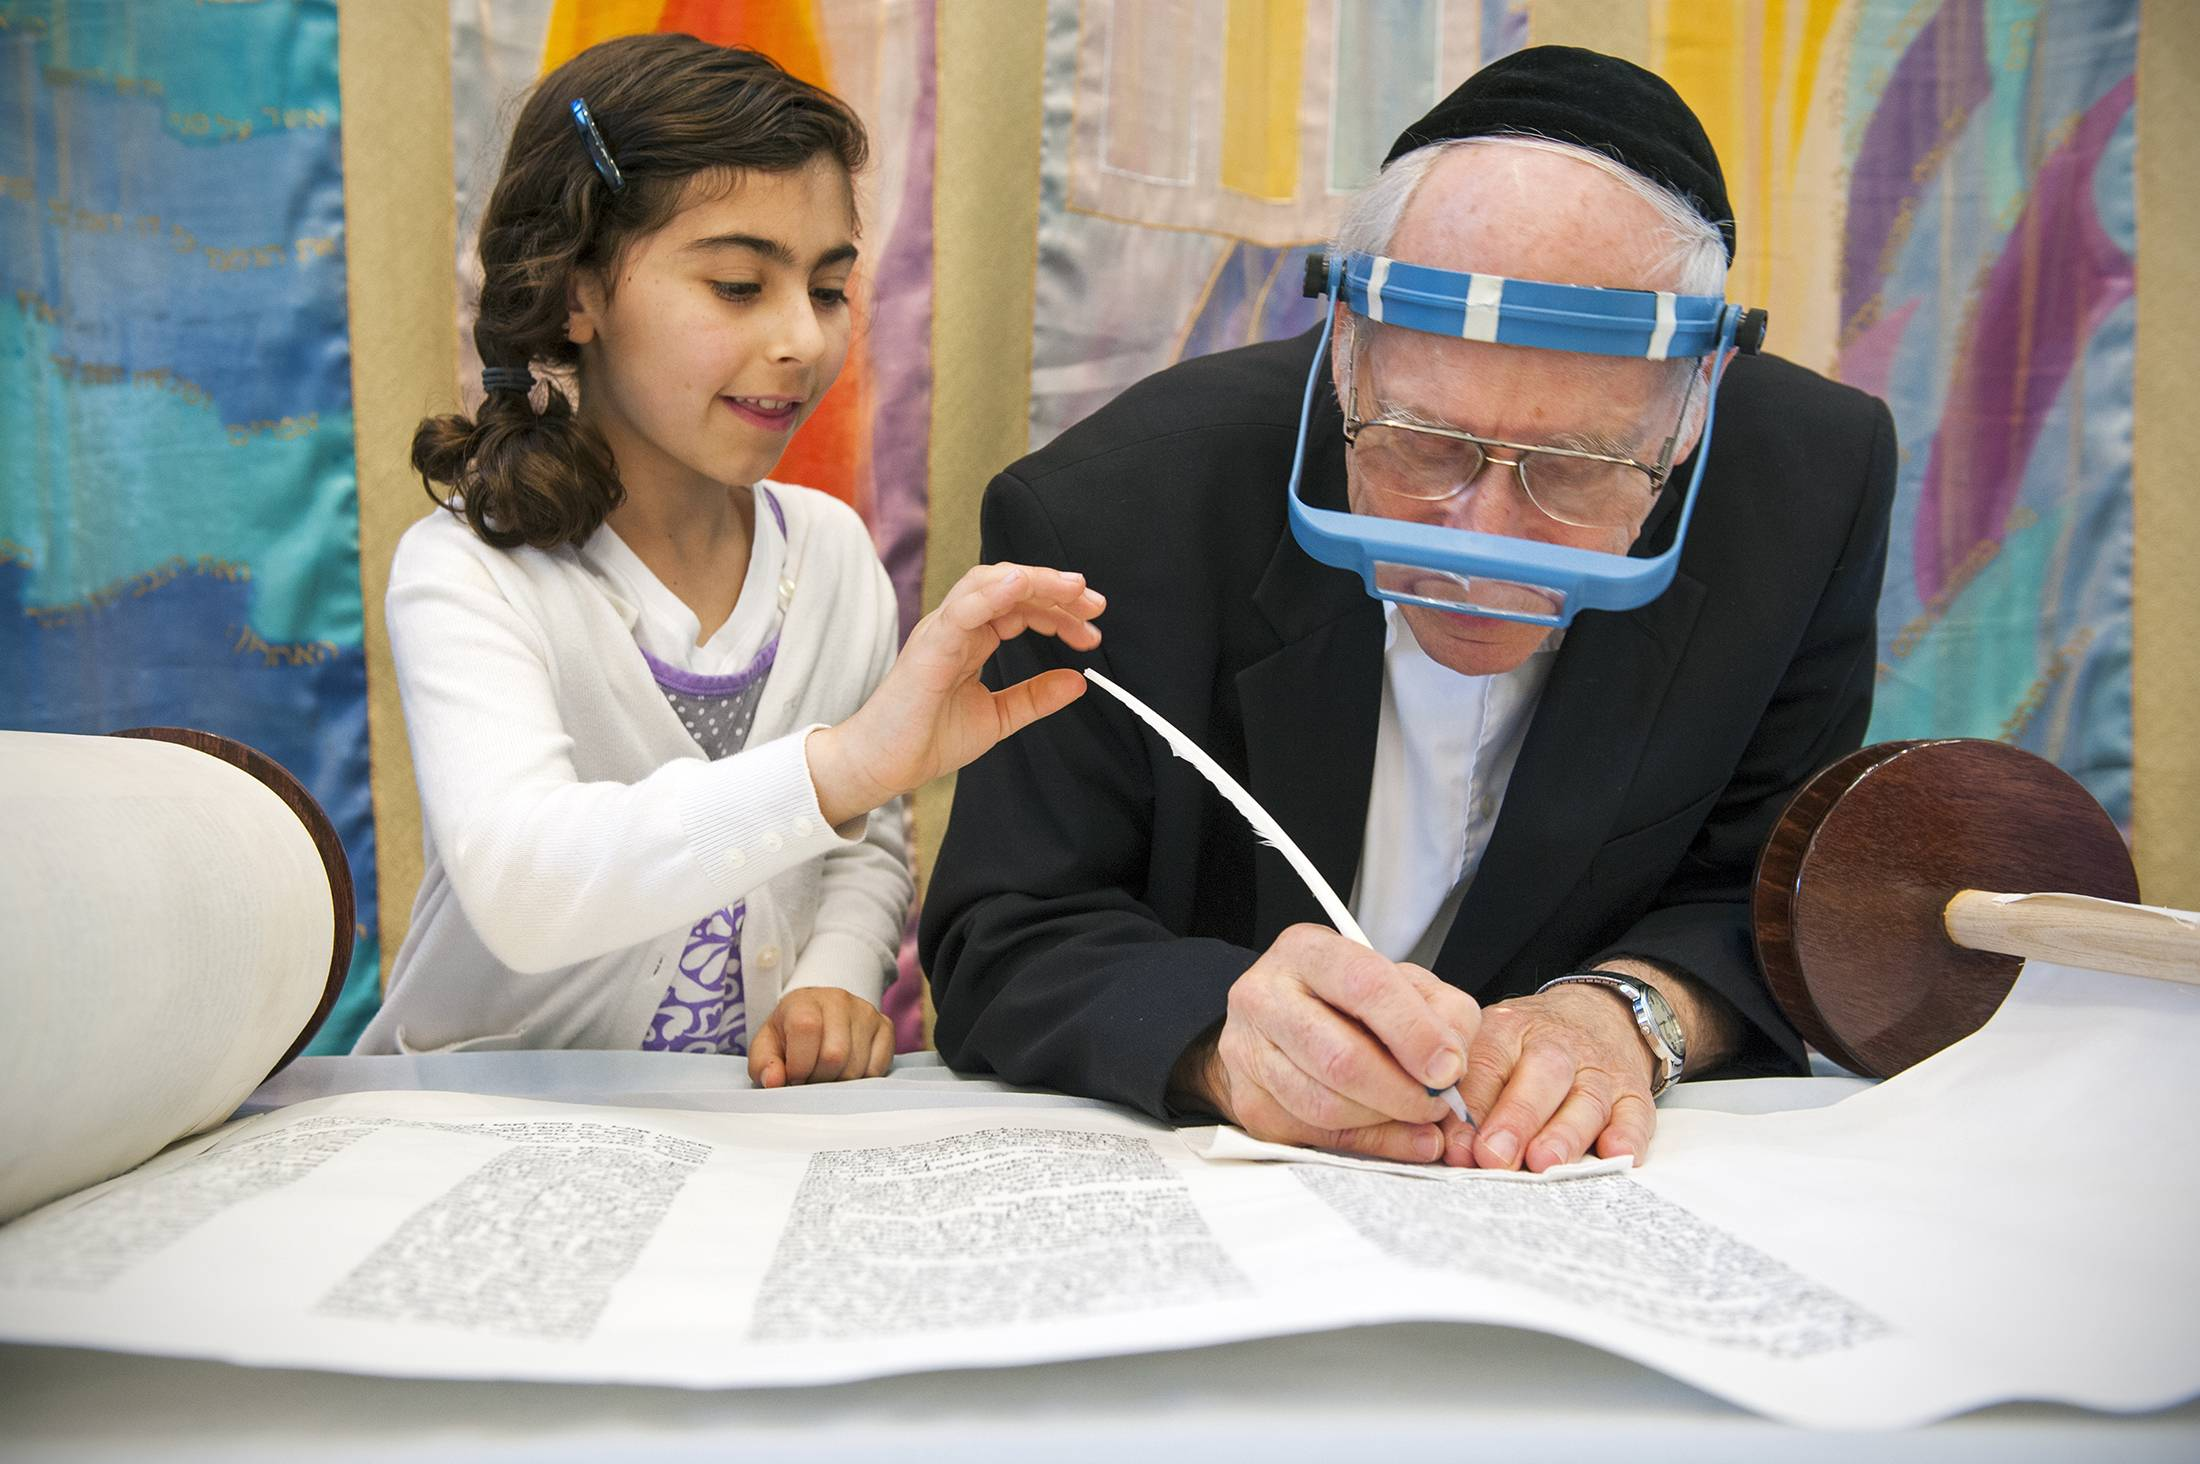 Mira Epstein, 8, left, lightly touches the feathered pen that her grandfather Richard Epstein uses to finish the final details of a Torah at Chabad of Potomac in Potomac, Md.